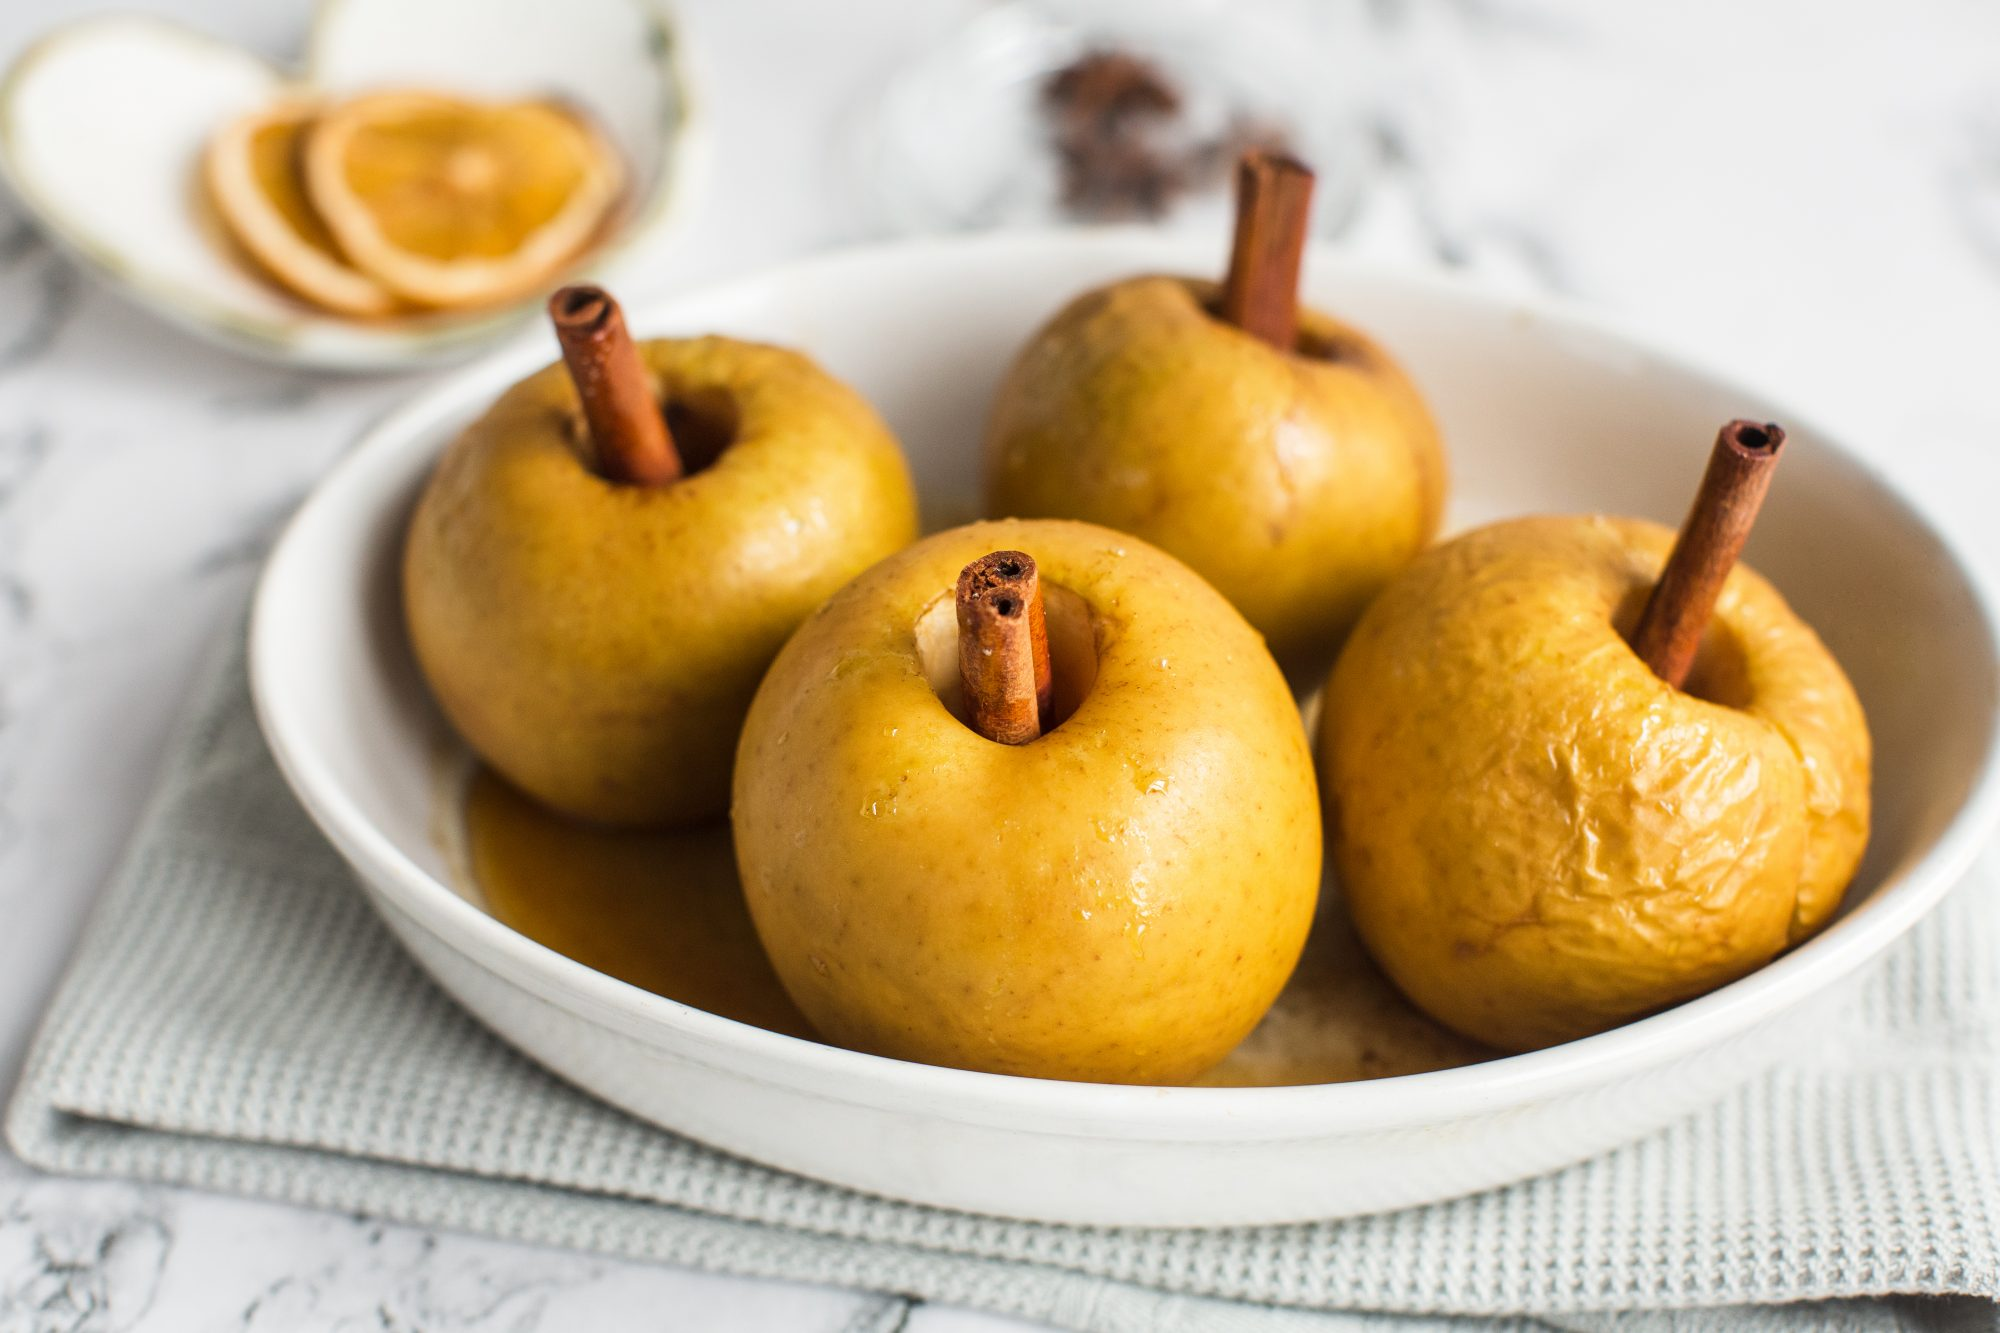 Microwave baked apples recipe, guide, and steps (microwave baked apples)